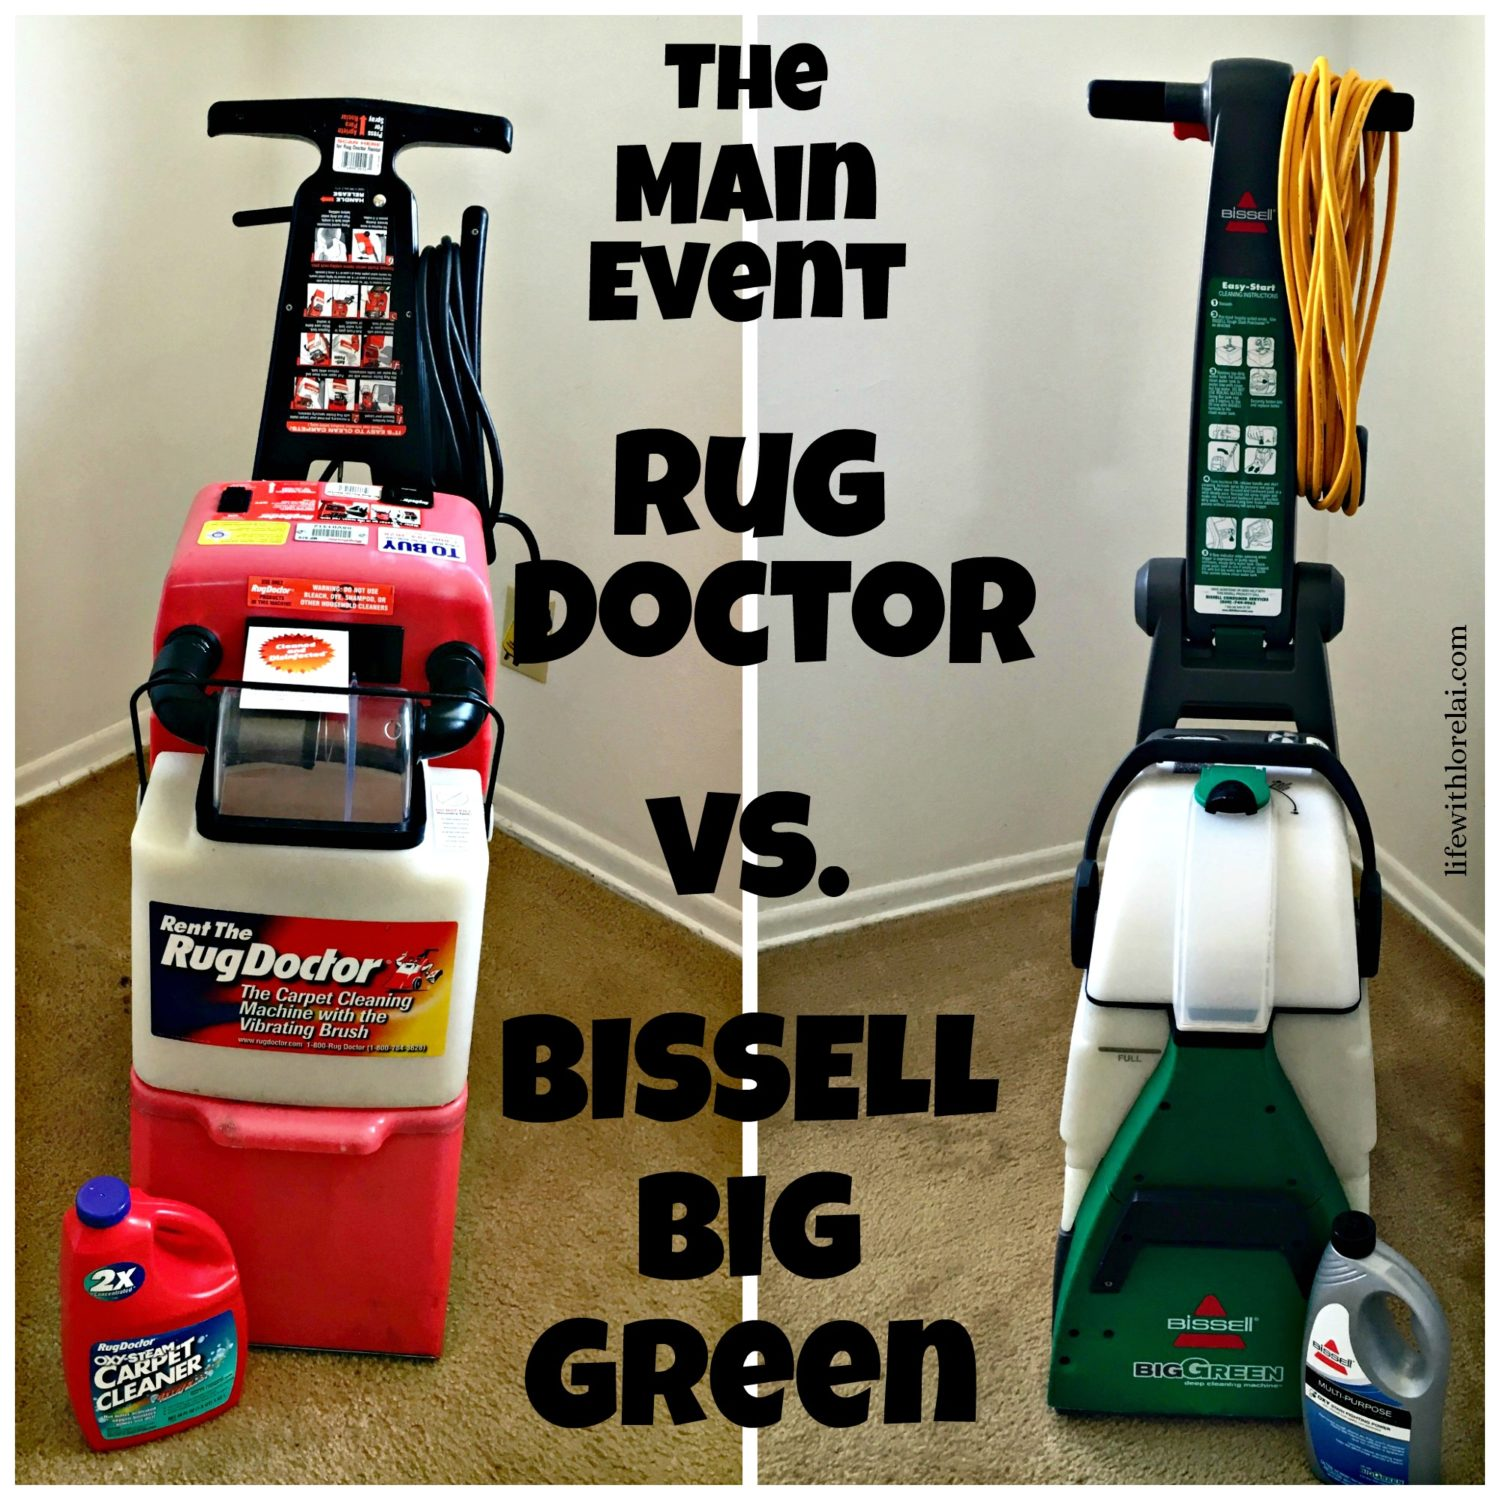 bissell big green cleaning machine vs rug doctor